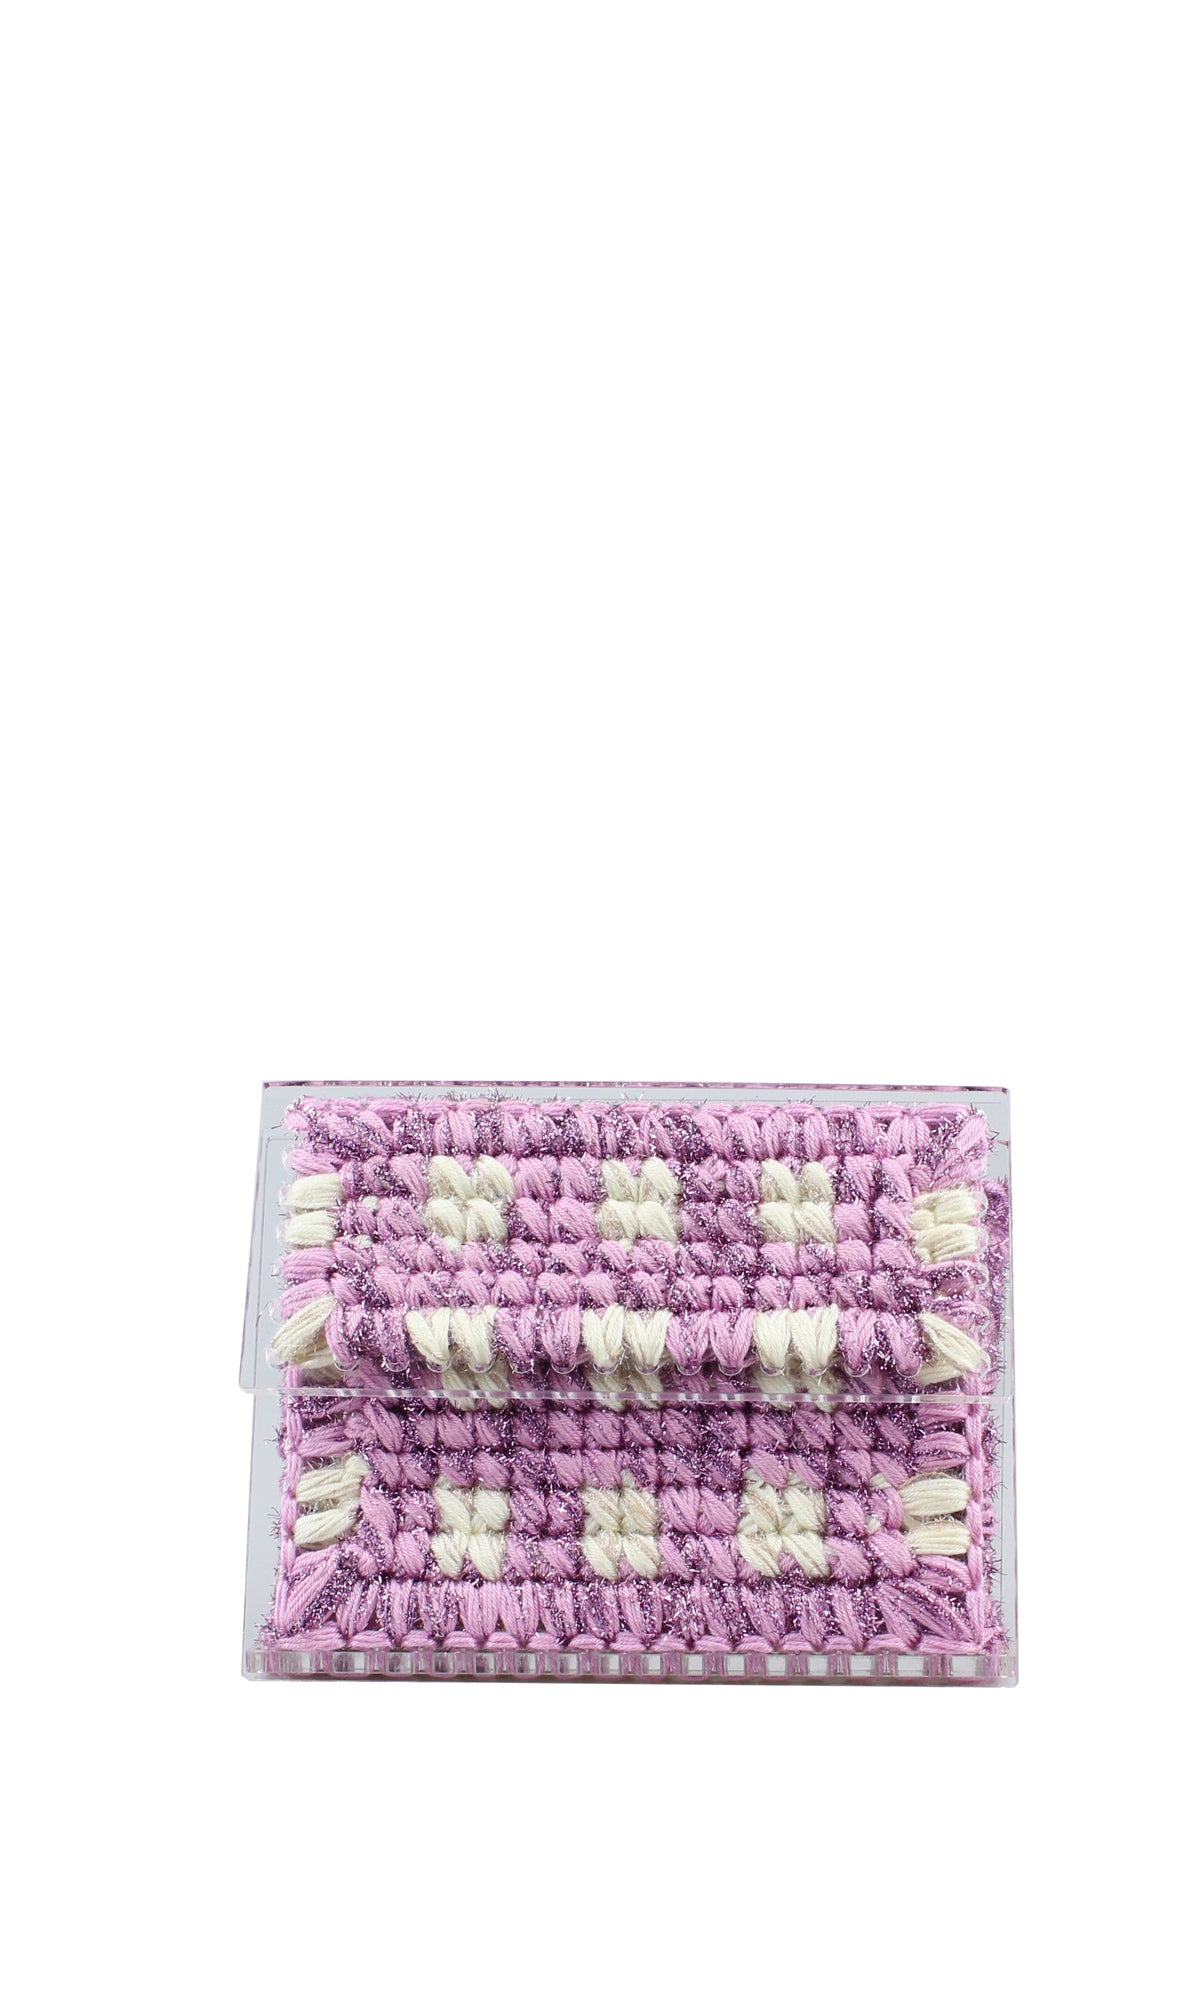 Cream & Pink Sparkly Knit Acrylic Clutch